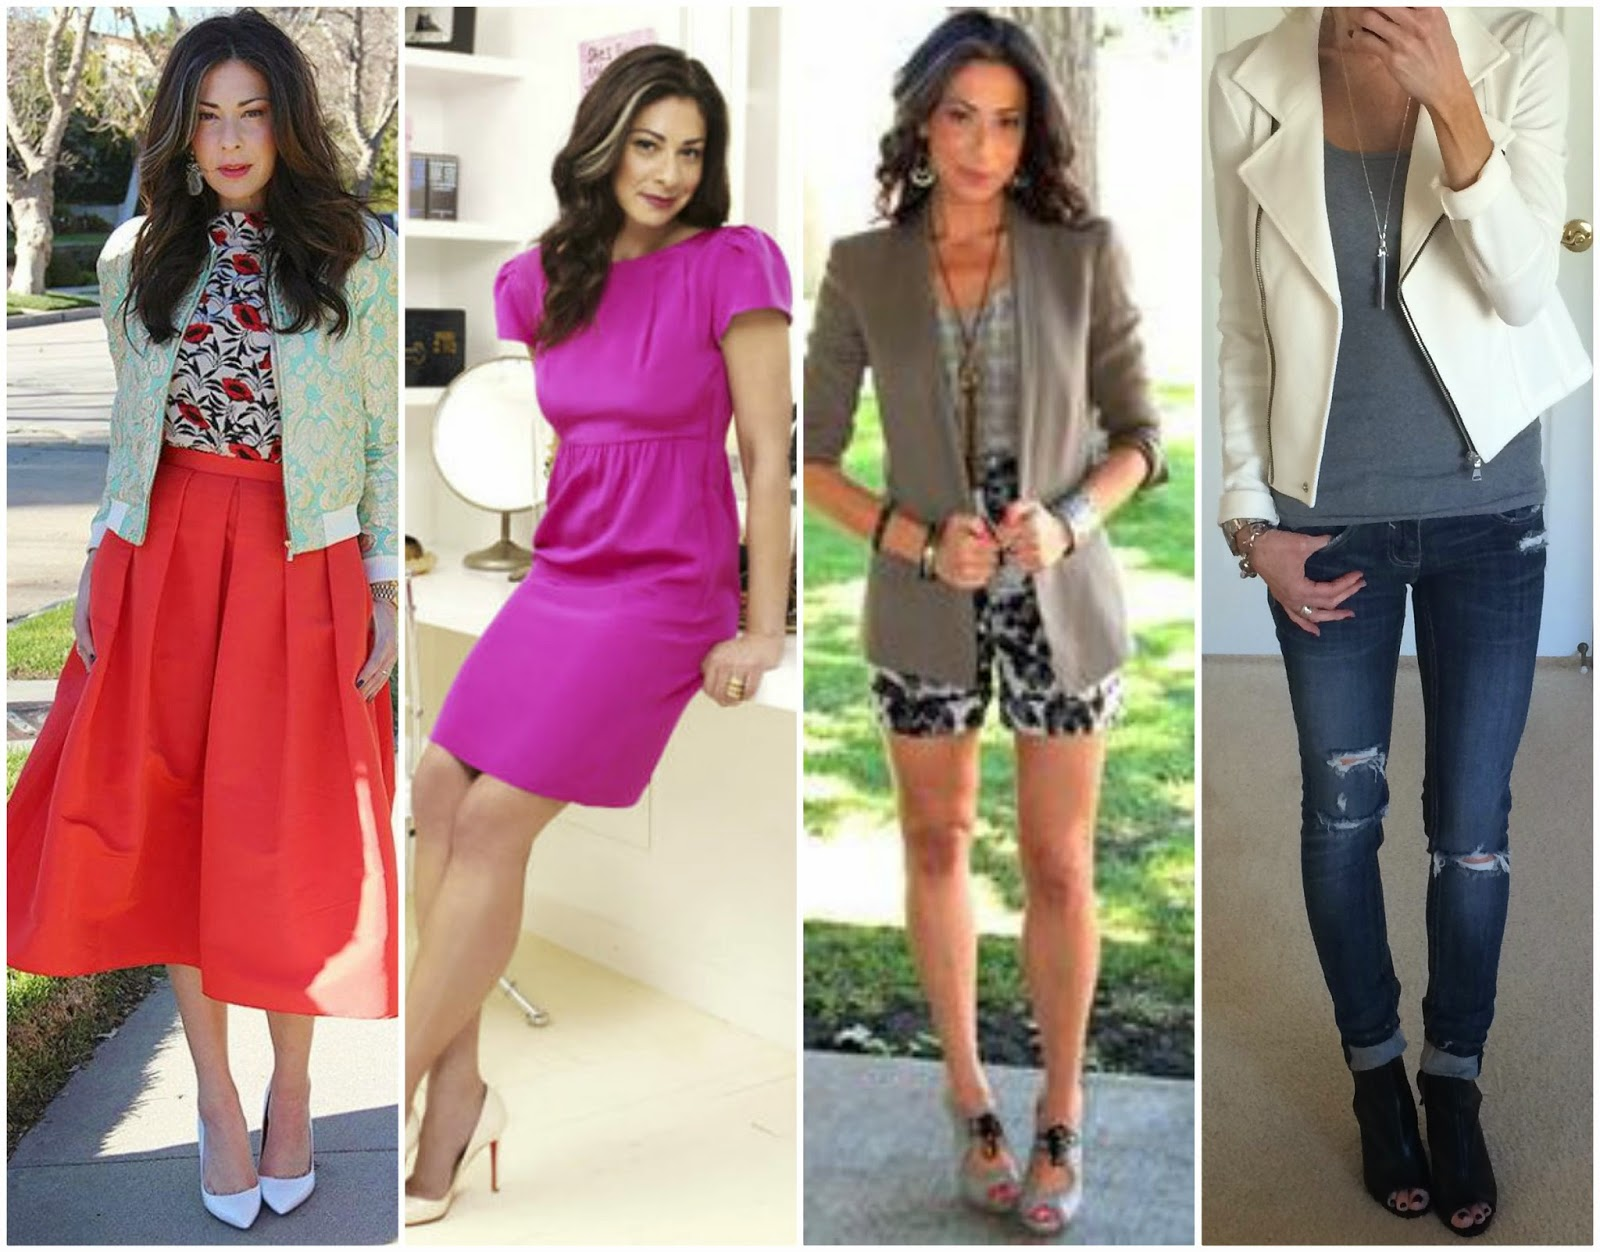 Stacy London 39 S Top Style Tips On The Daily Express